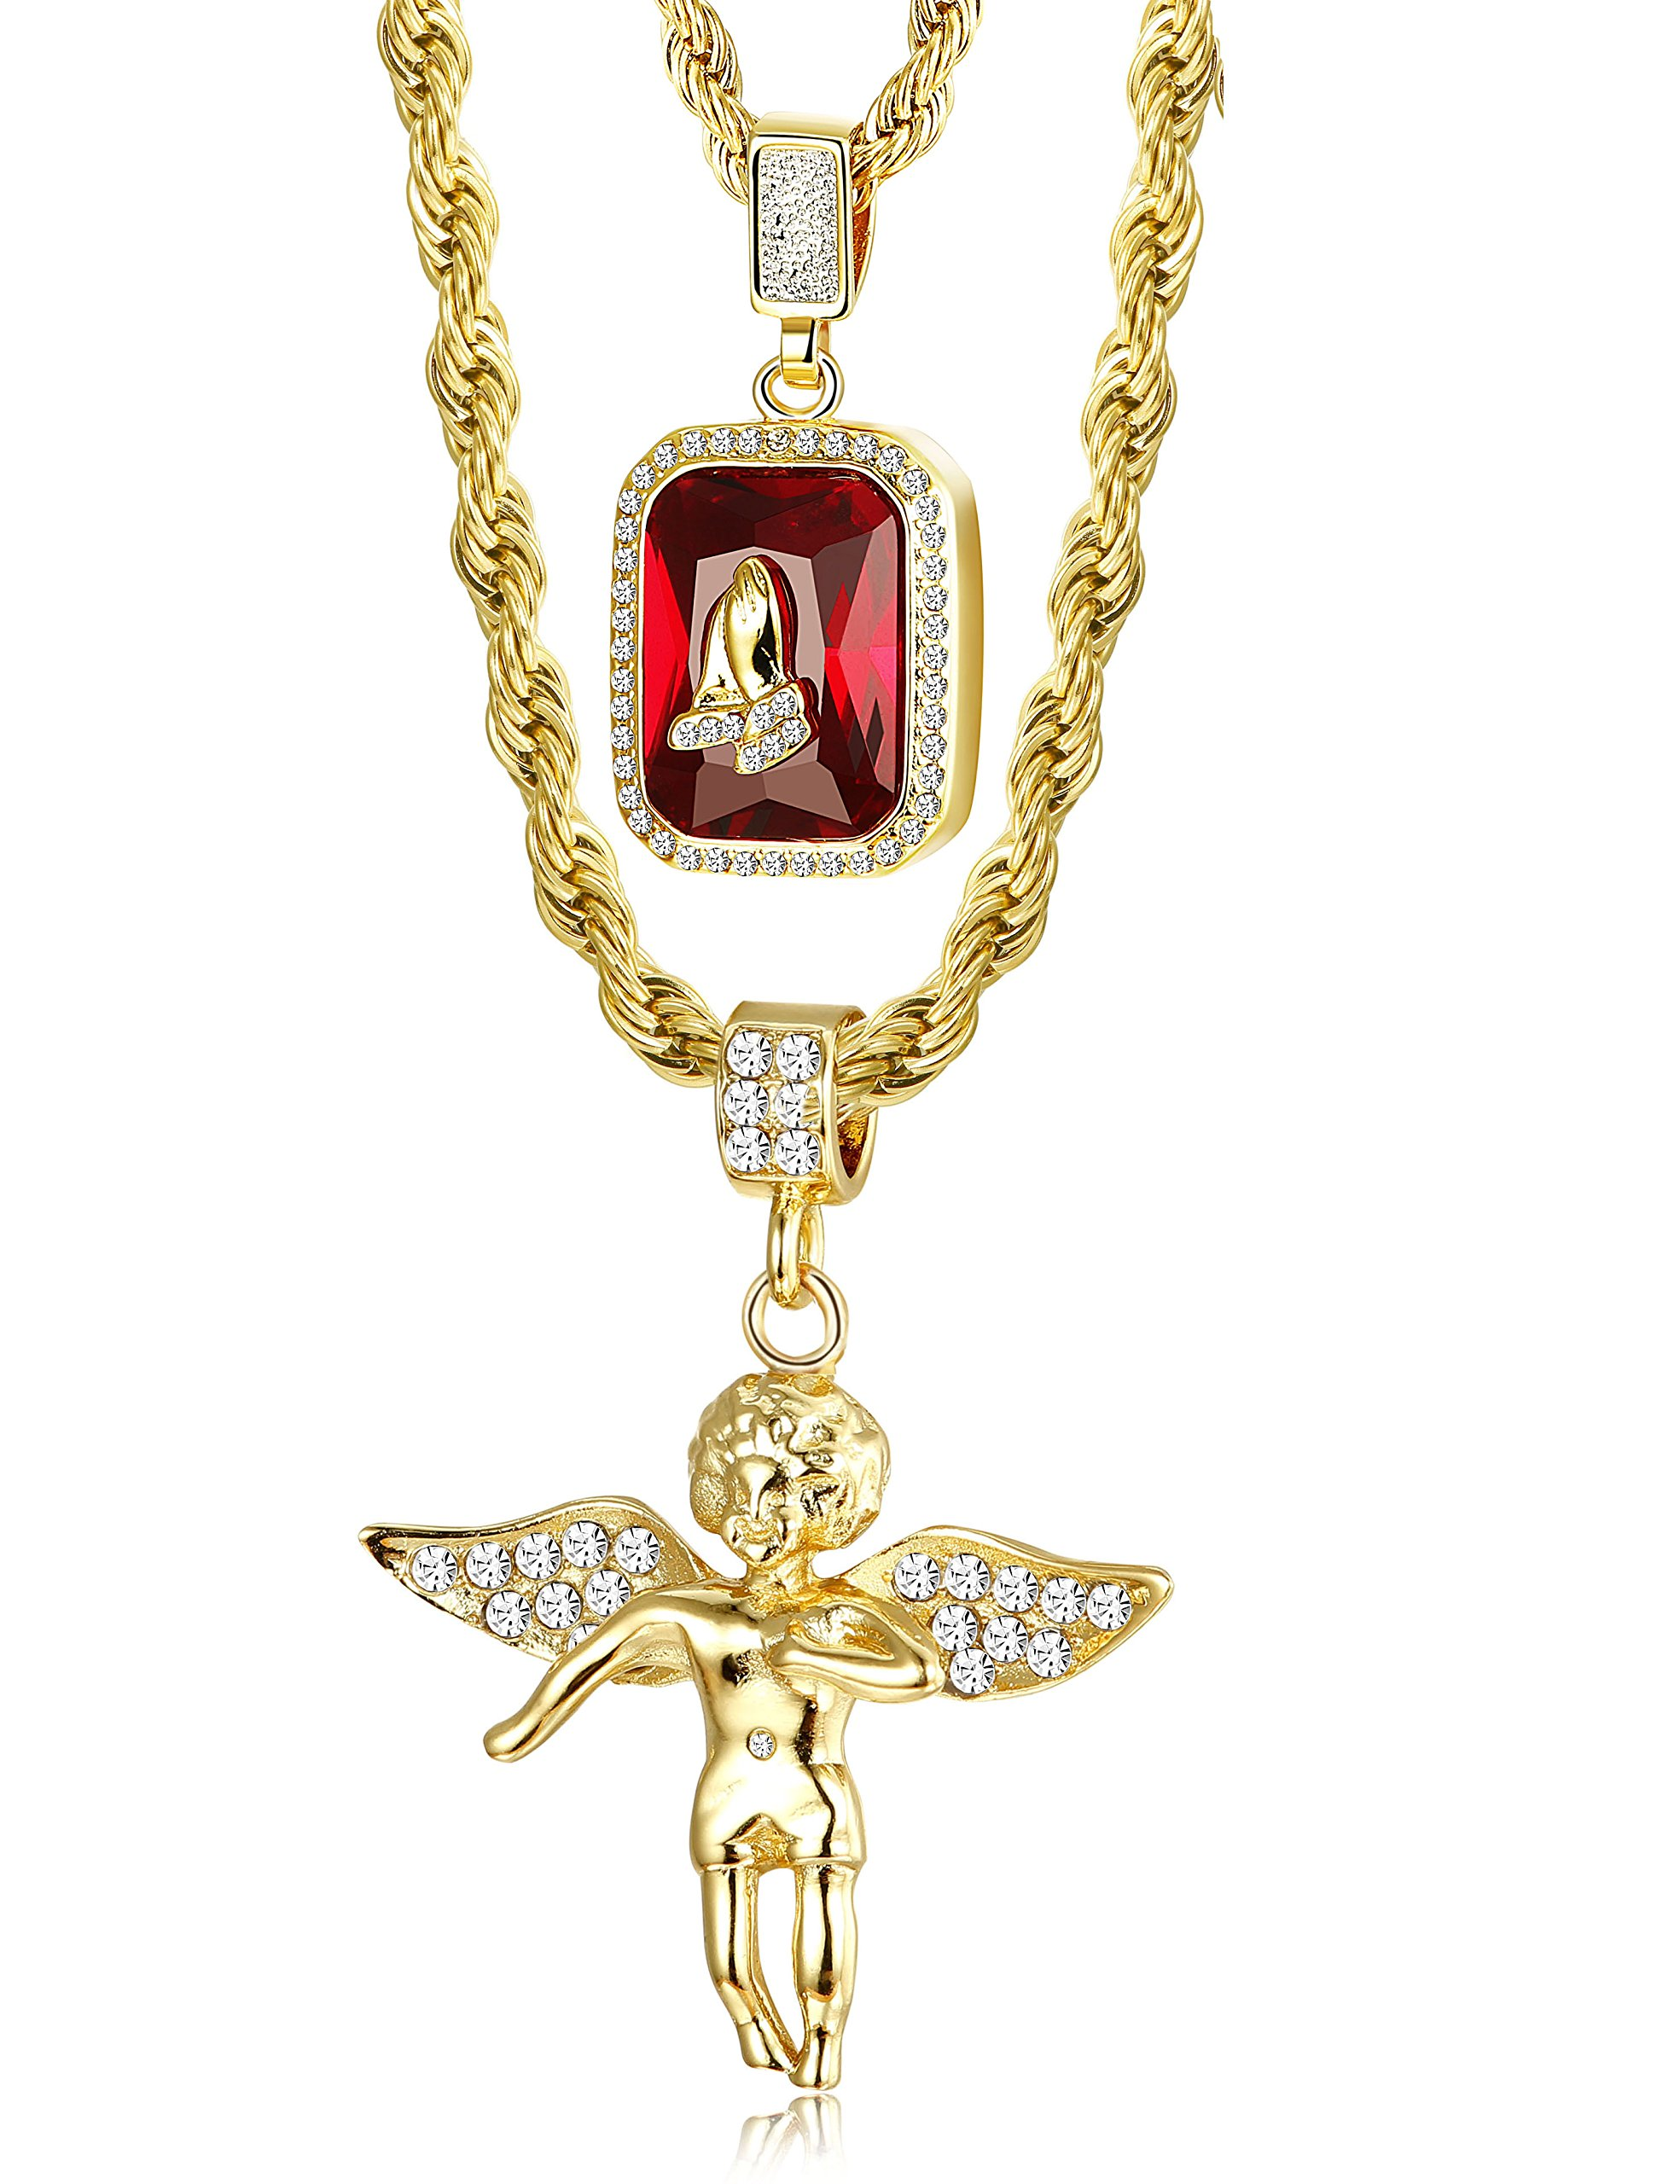 LOLIAS Mens Gold Necklace Hip Hop Rope Chain Necklaces for Men Angel & Ruby Pendant praying Hand Necklace 24 & 30 Inches